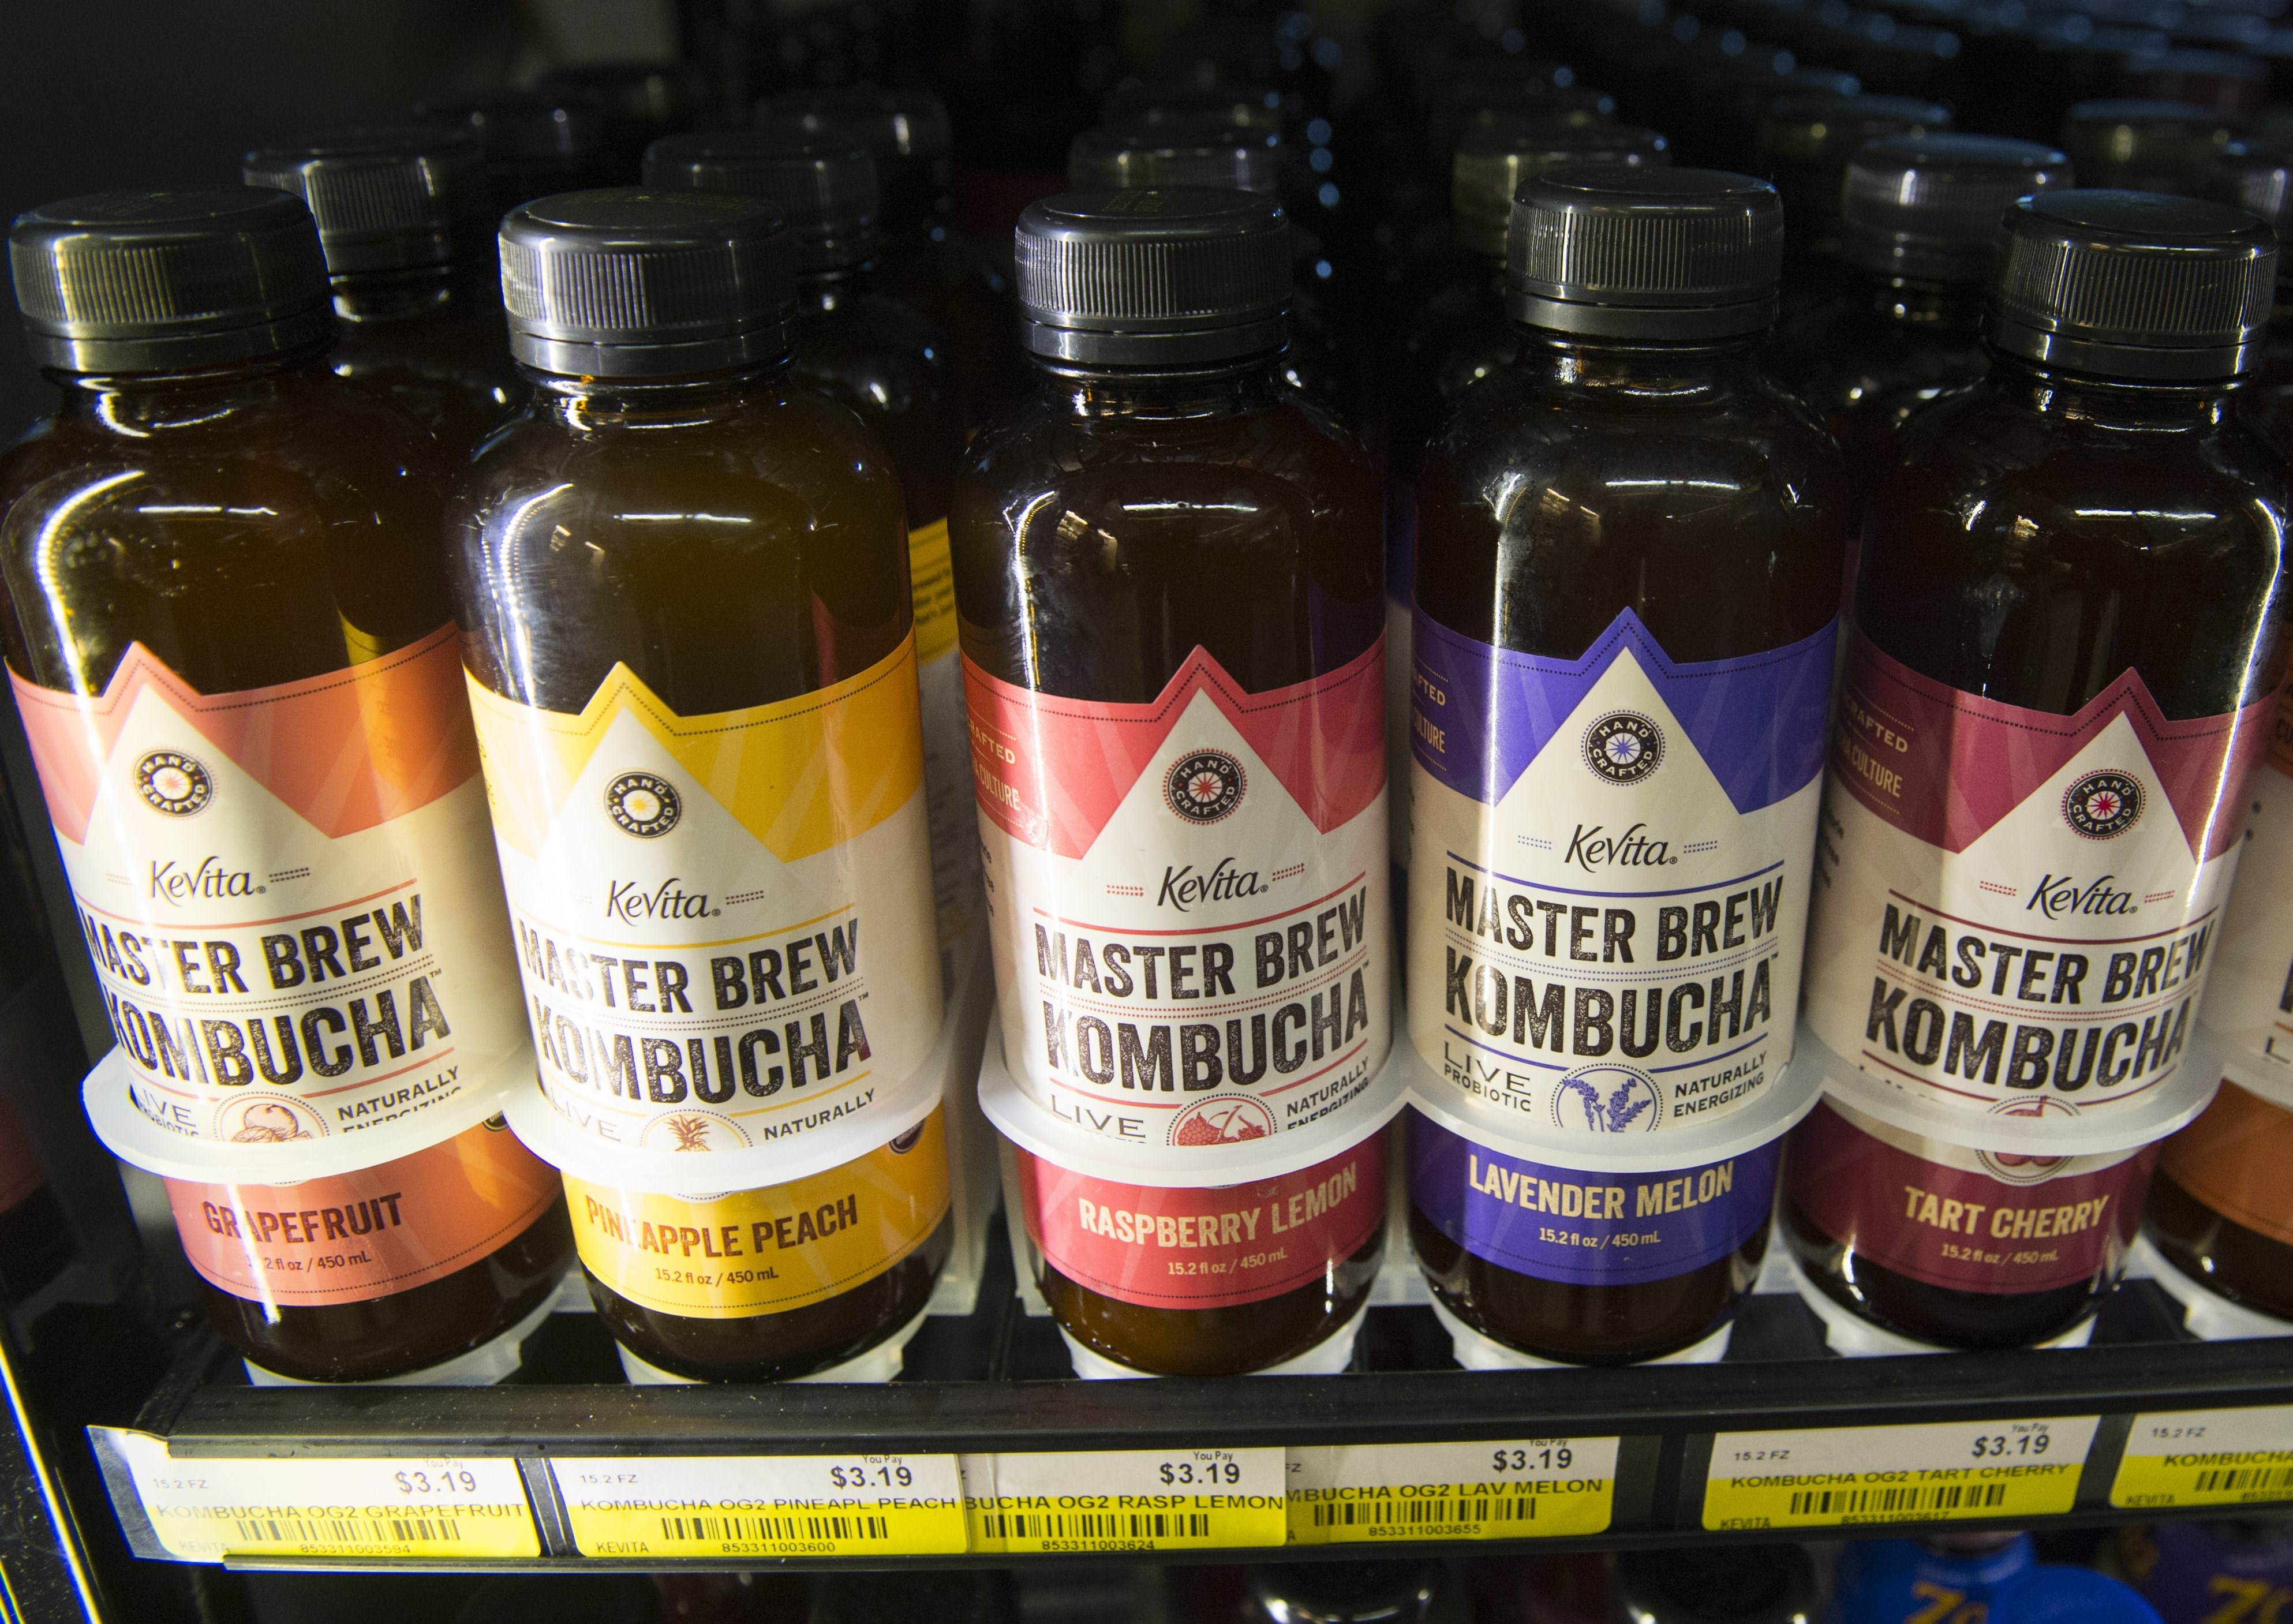 Bottles of kombucha, a fermented tea that originated in China, are seen for sale at a store in Washington, DC, August 12, 2015.